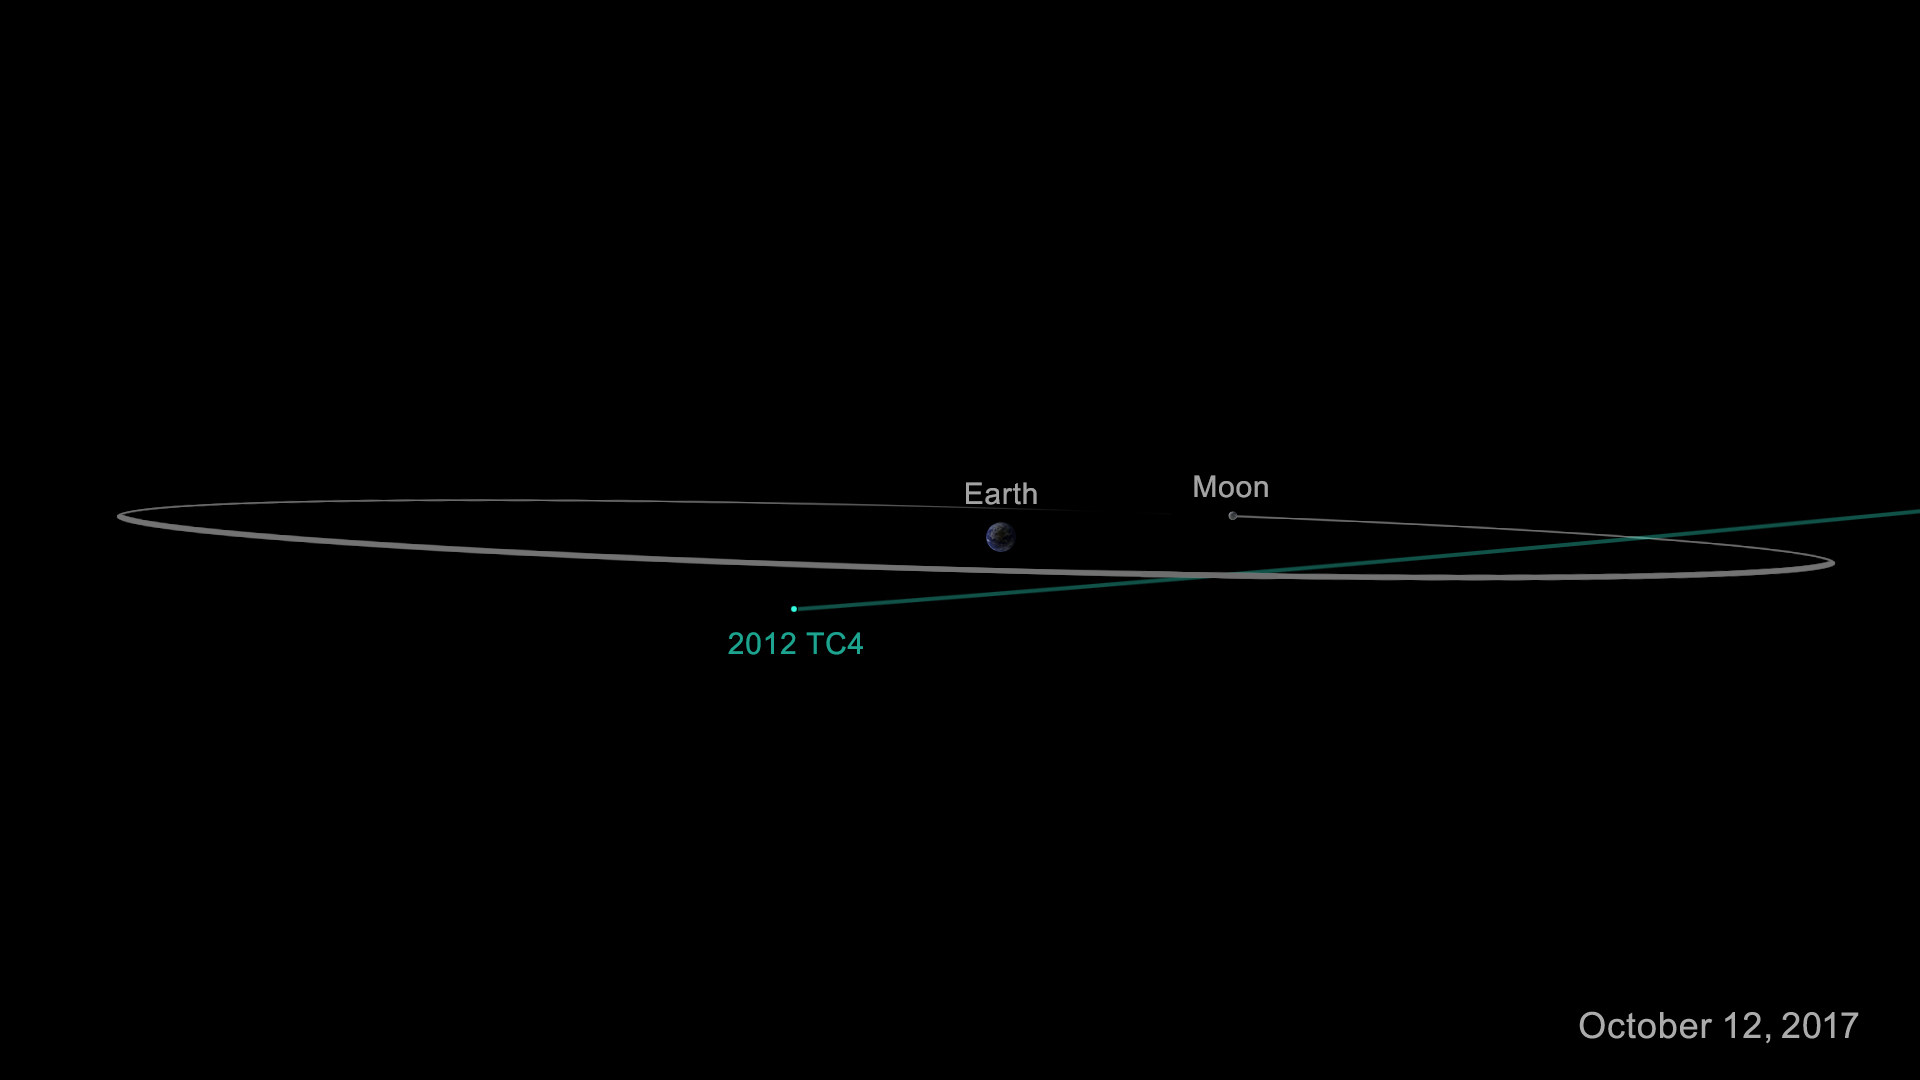 3D view of 2012 TC4 trajectory through the plane of the Earth and Moon orbits. Credit: NASA/CNEOS